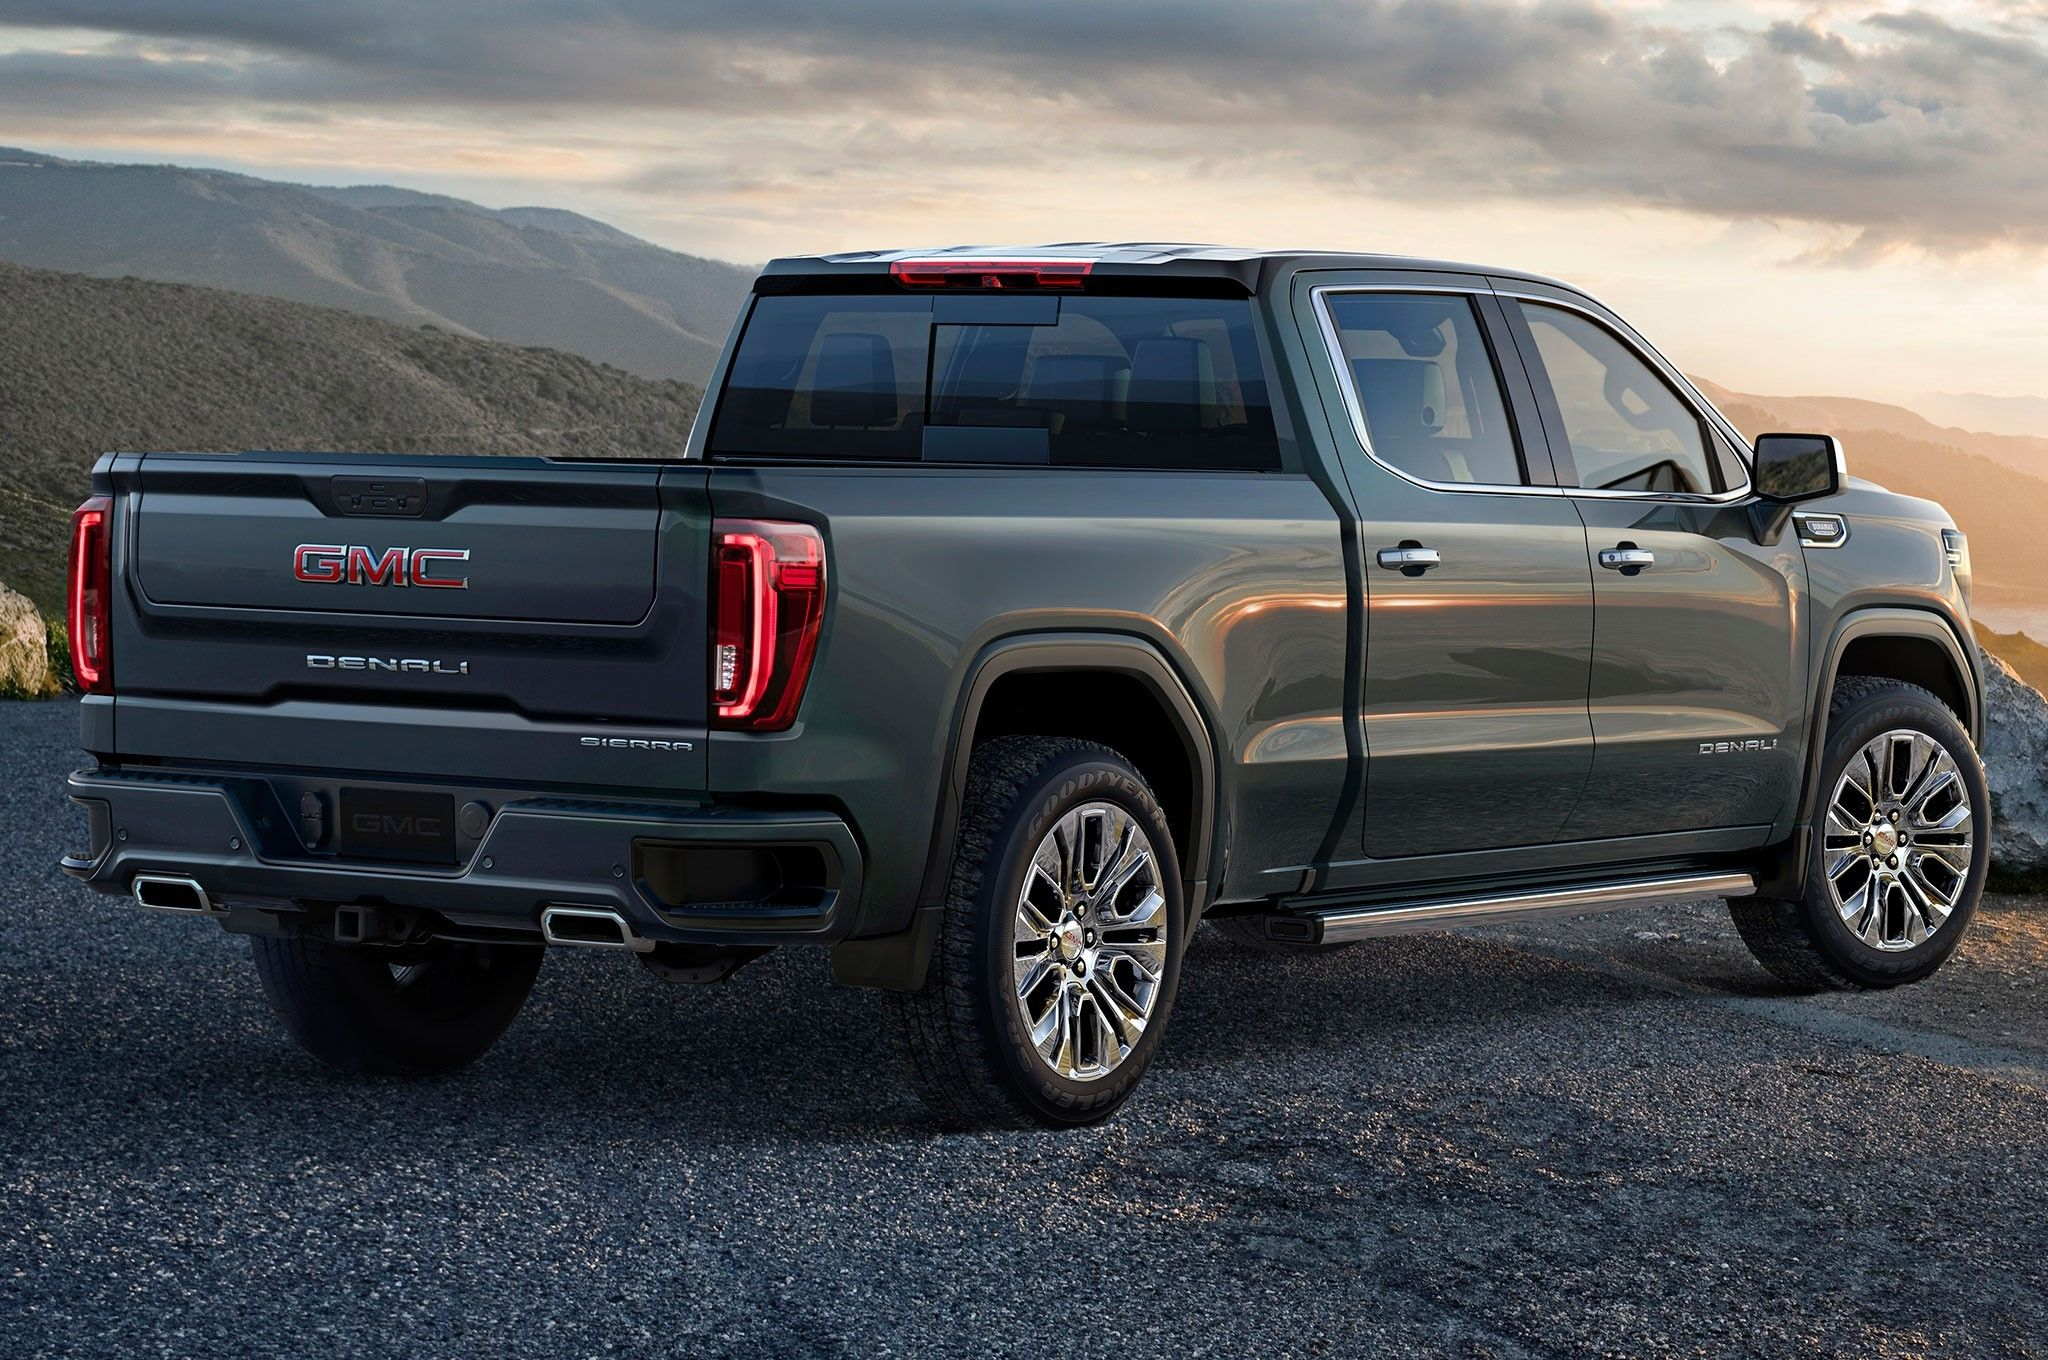 2019 Gmc Canyon Denali Interior Exterior And Review With Images